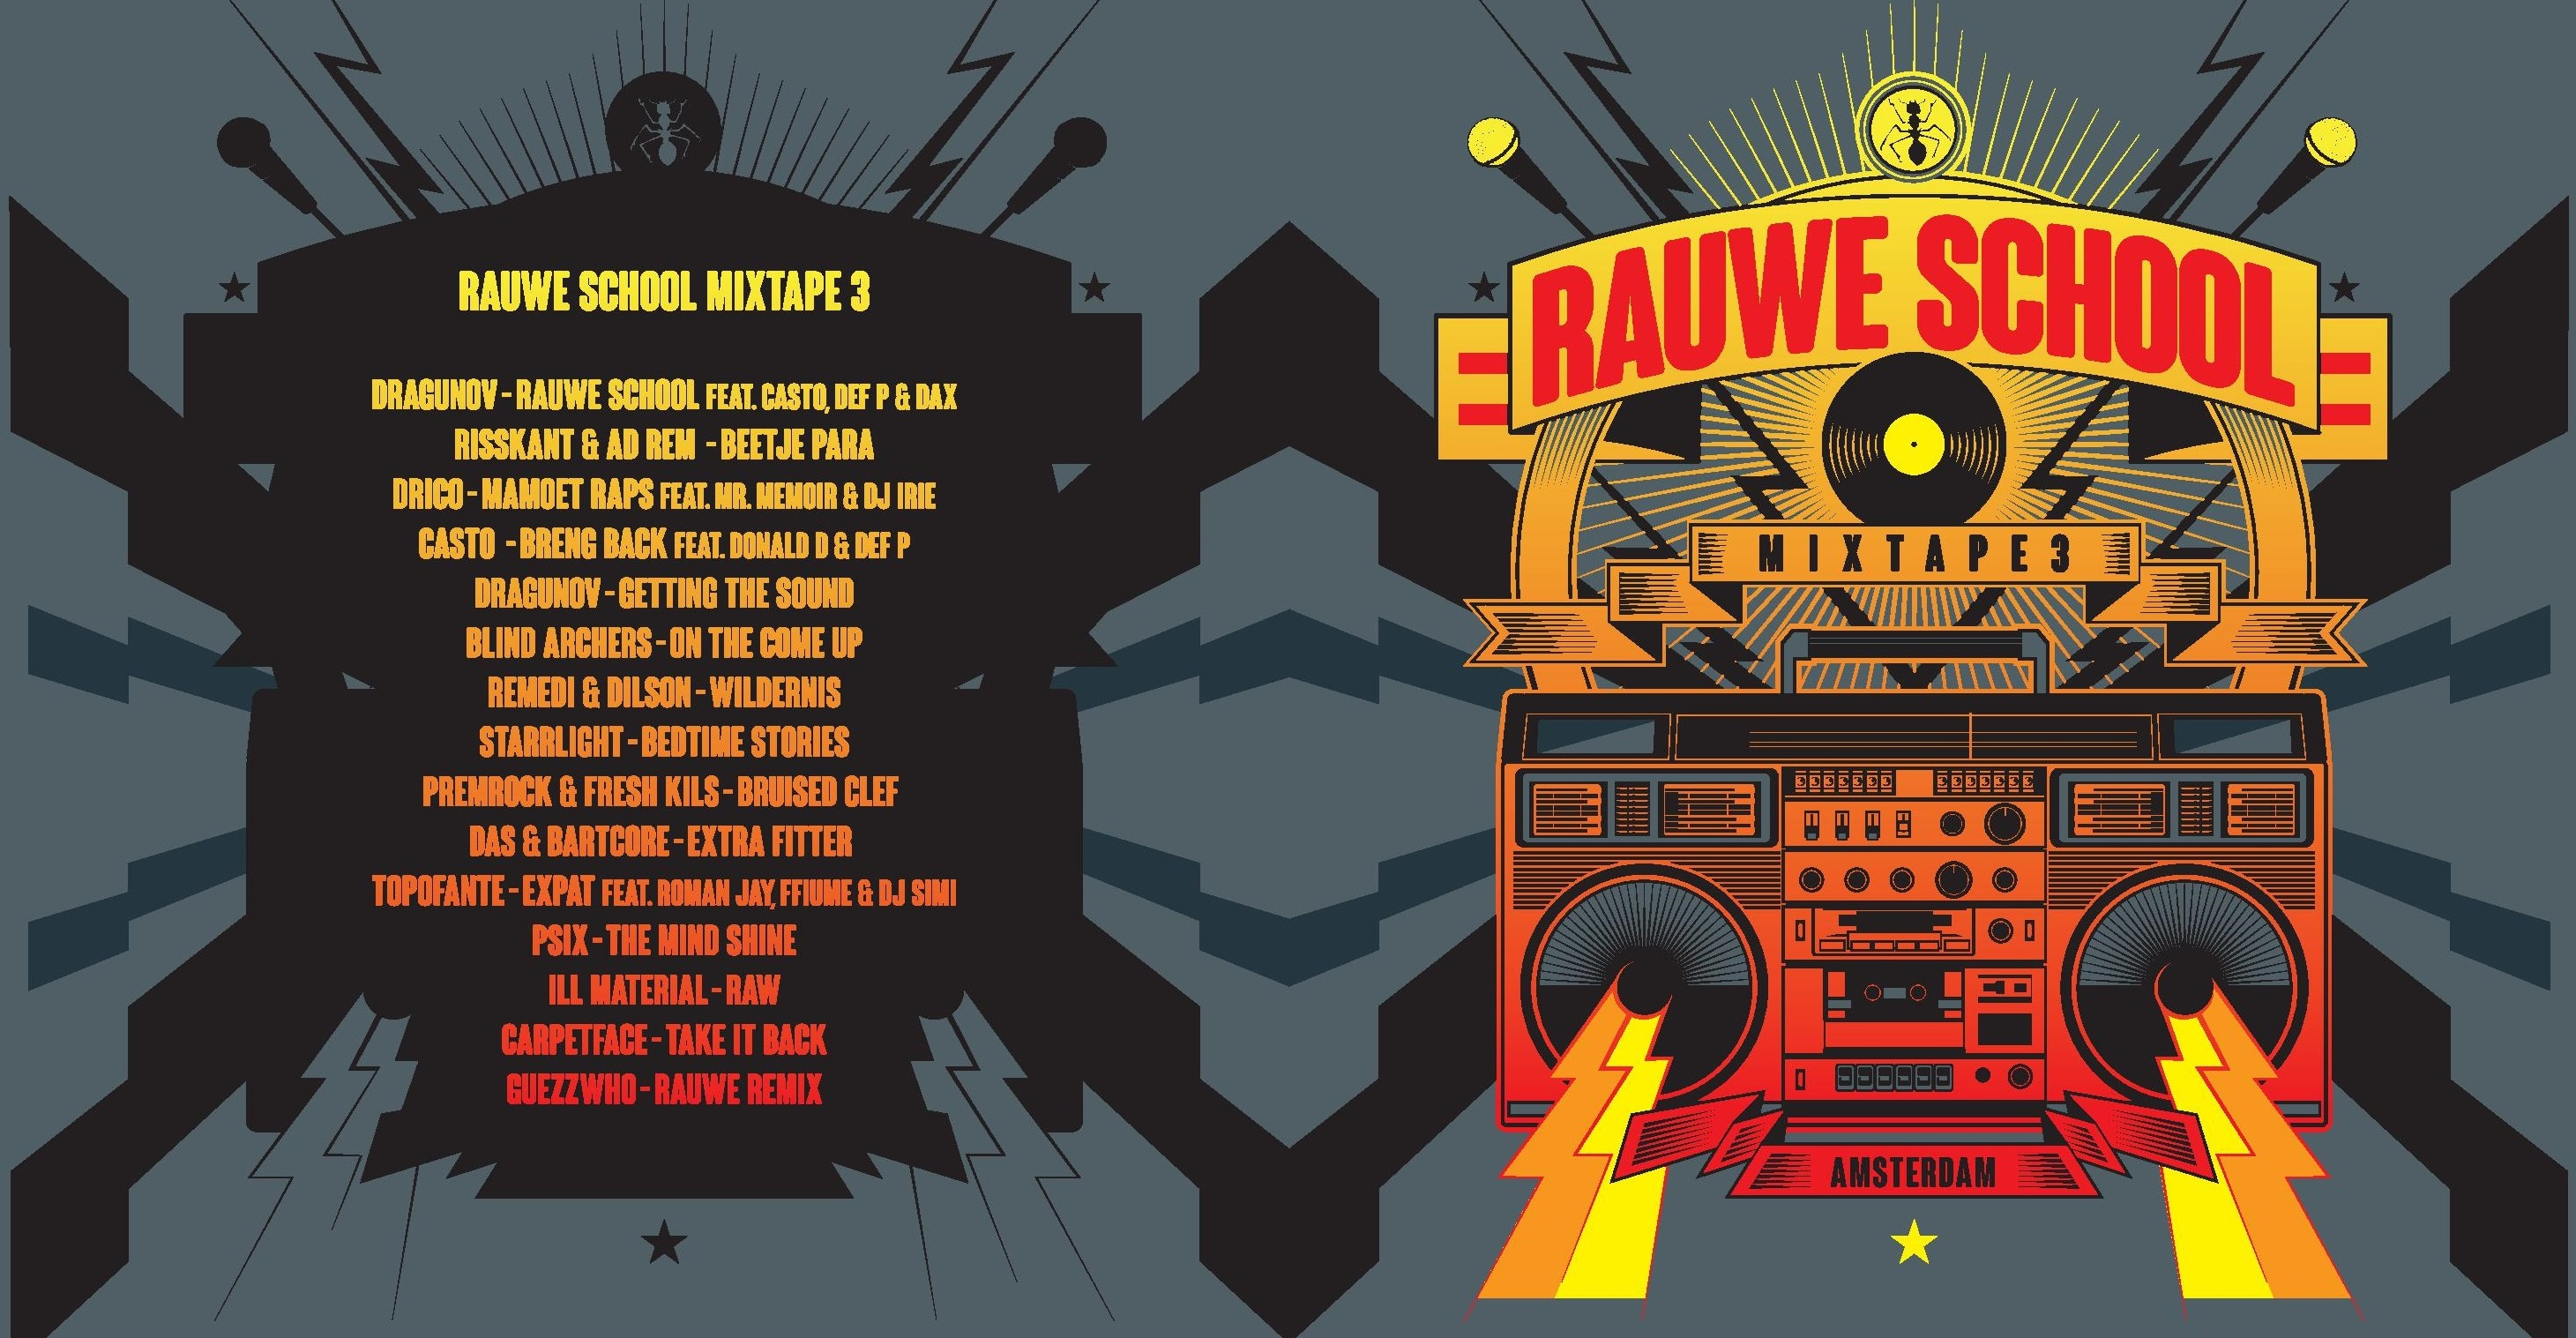 Rauwe School Mixtape 3 T shirt2